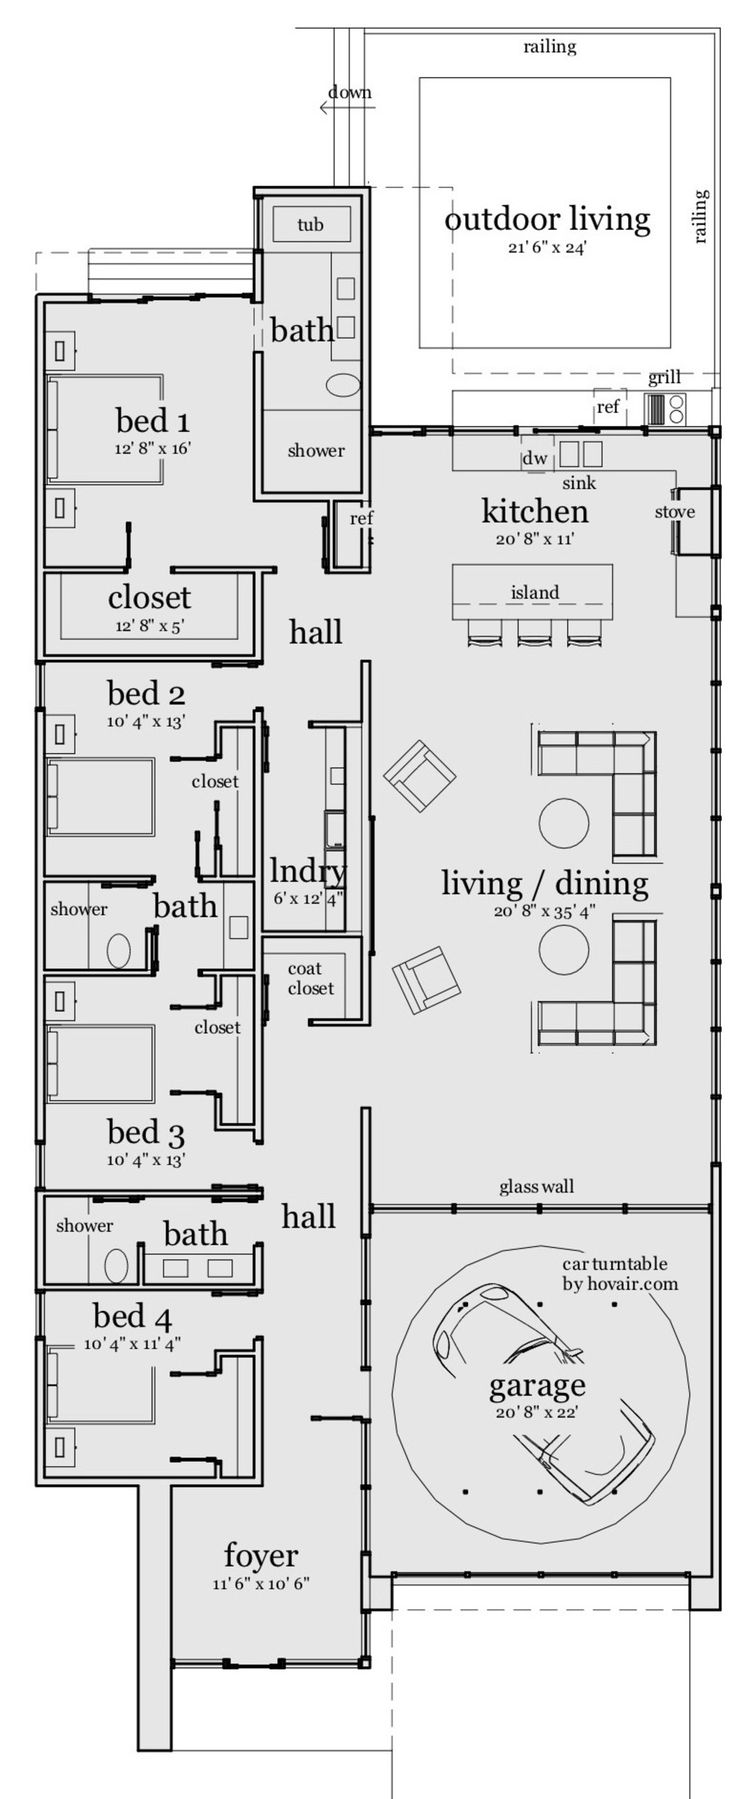 8 x 10 master bathroom layout - Cool House Plans Offers A Unique Variety Of Professionally Designed Home Plans With Floor Plans By Accredited Home Designers Styles Include Country House